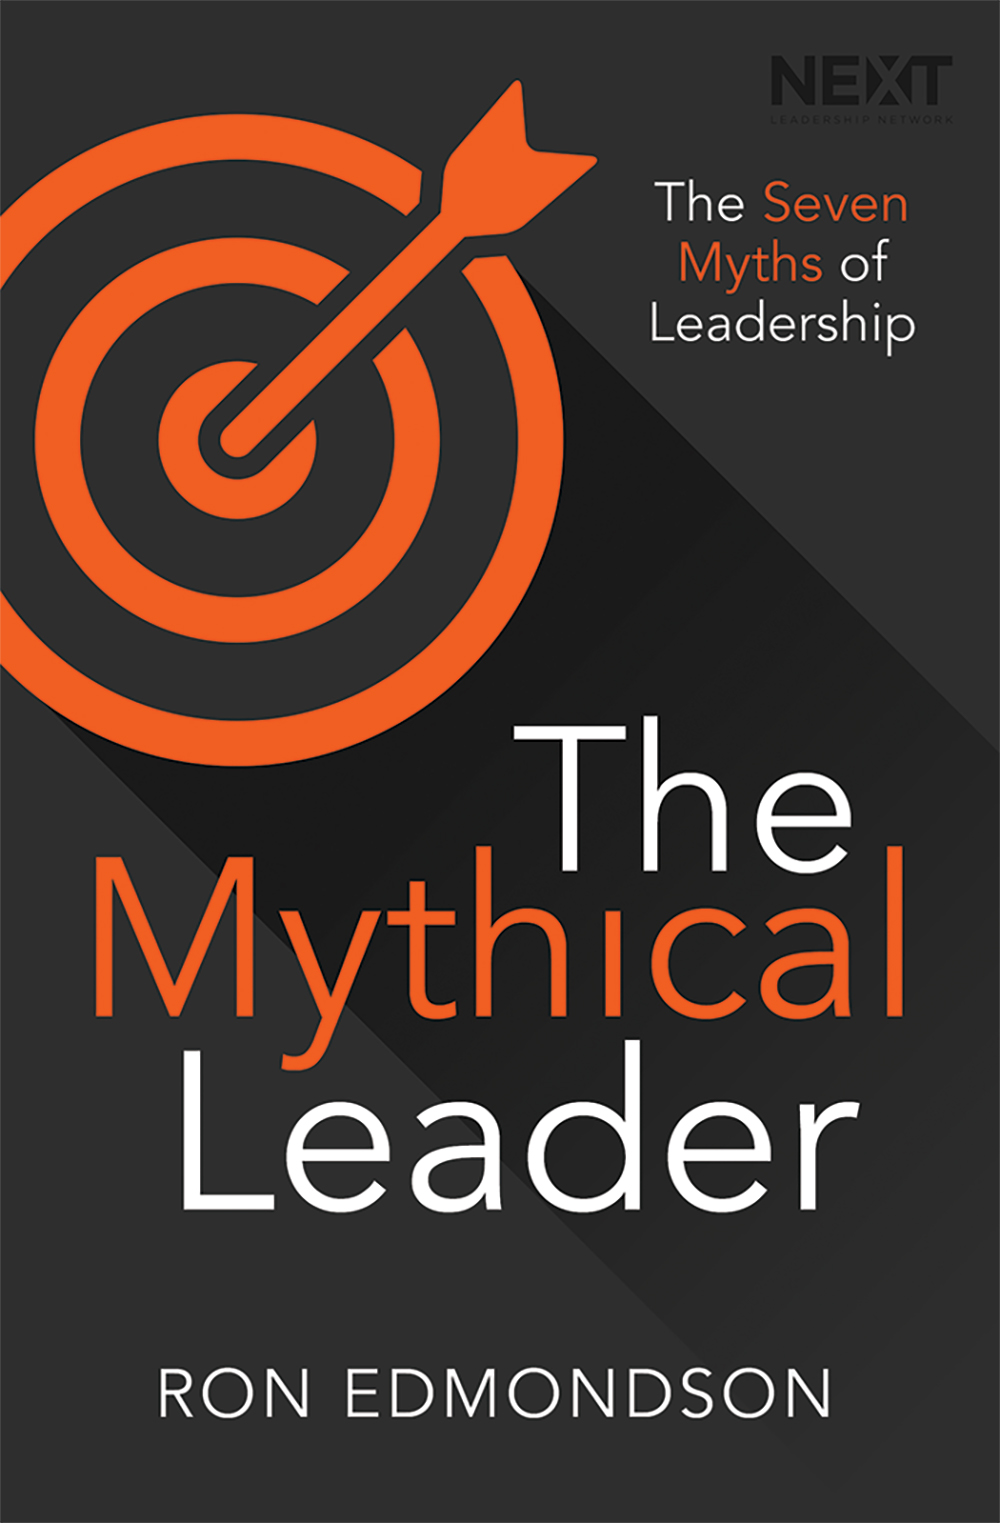 Mythical Leader